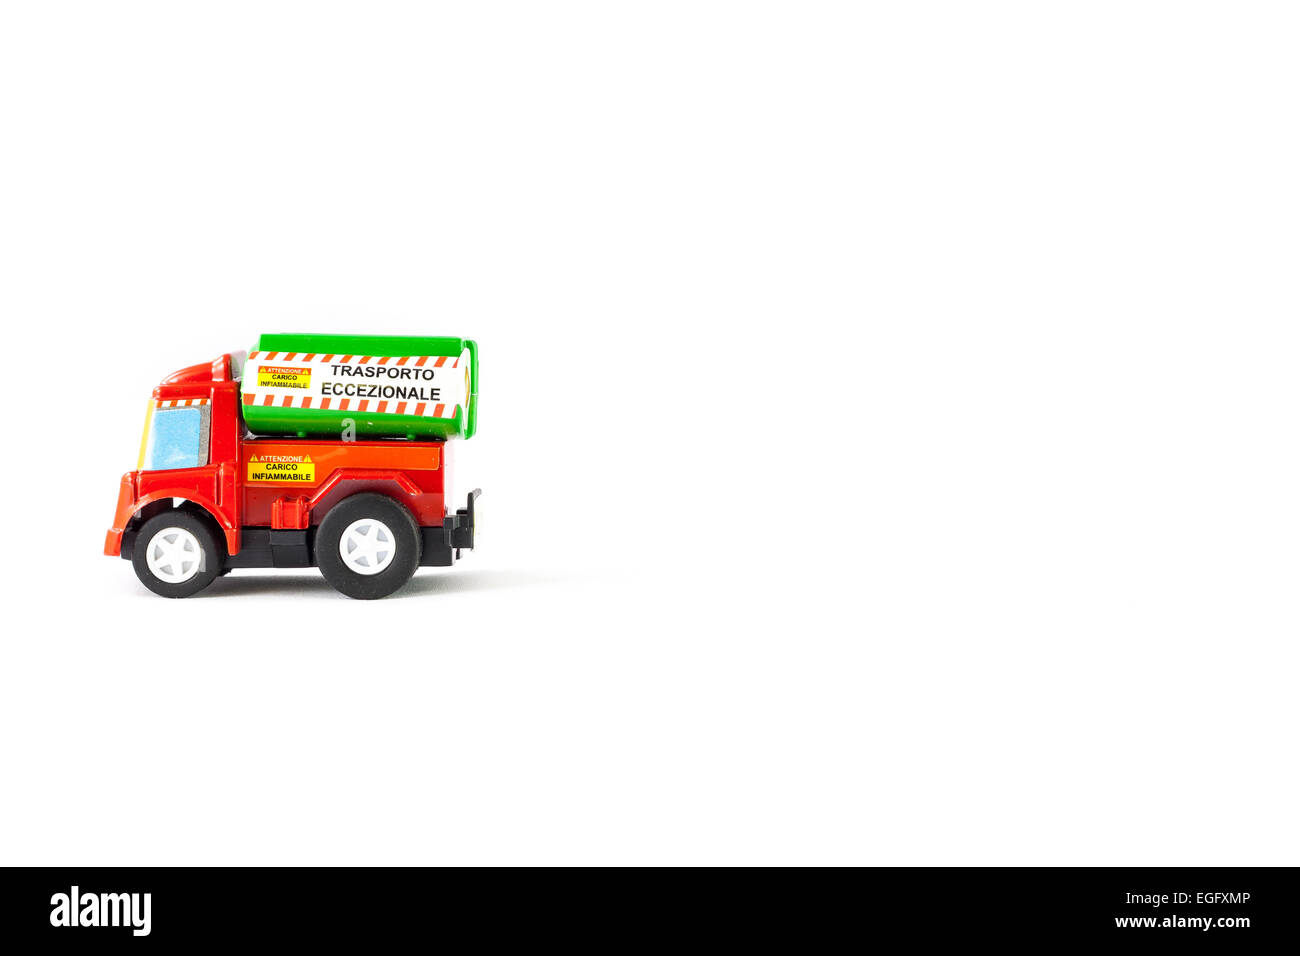 Load flammable toys. Abnormal load. - Stock Image